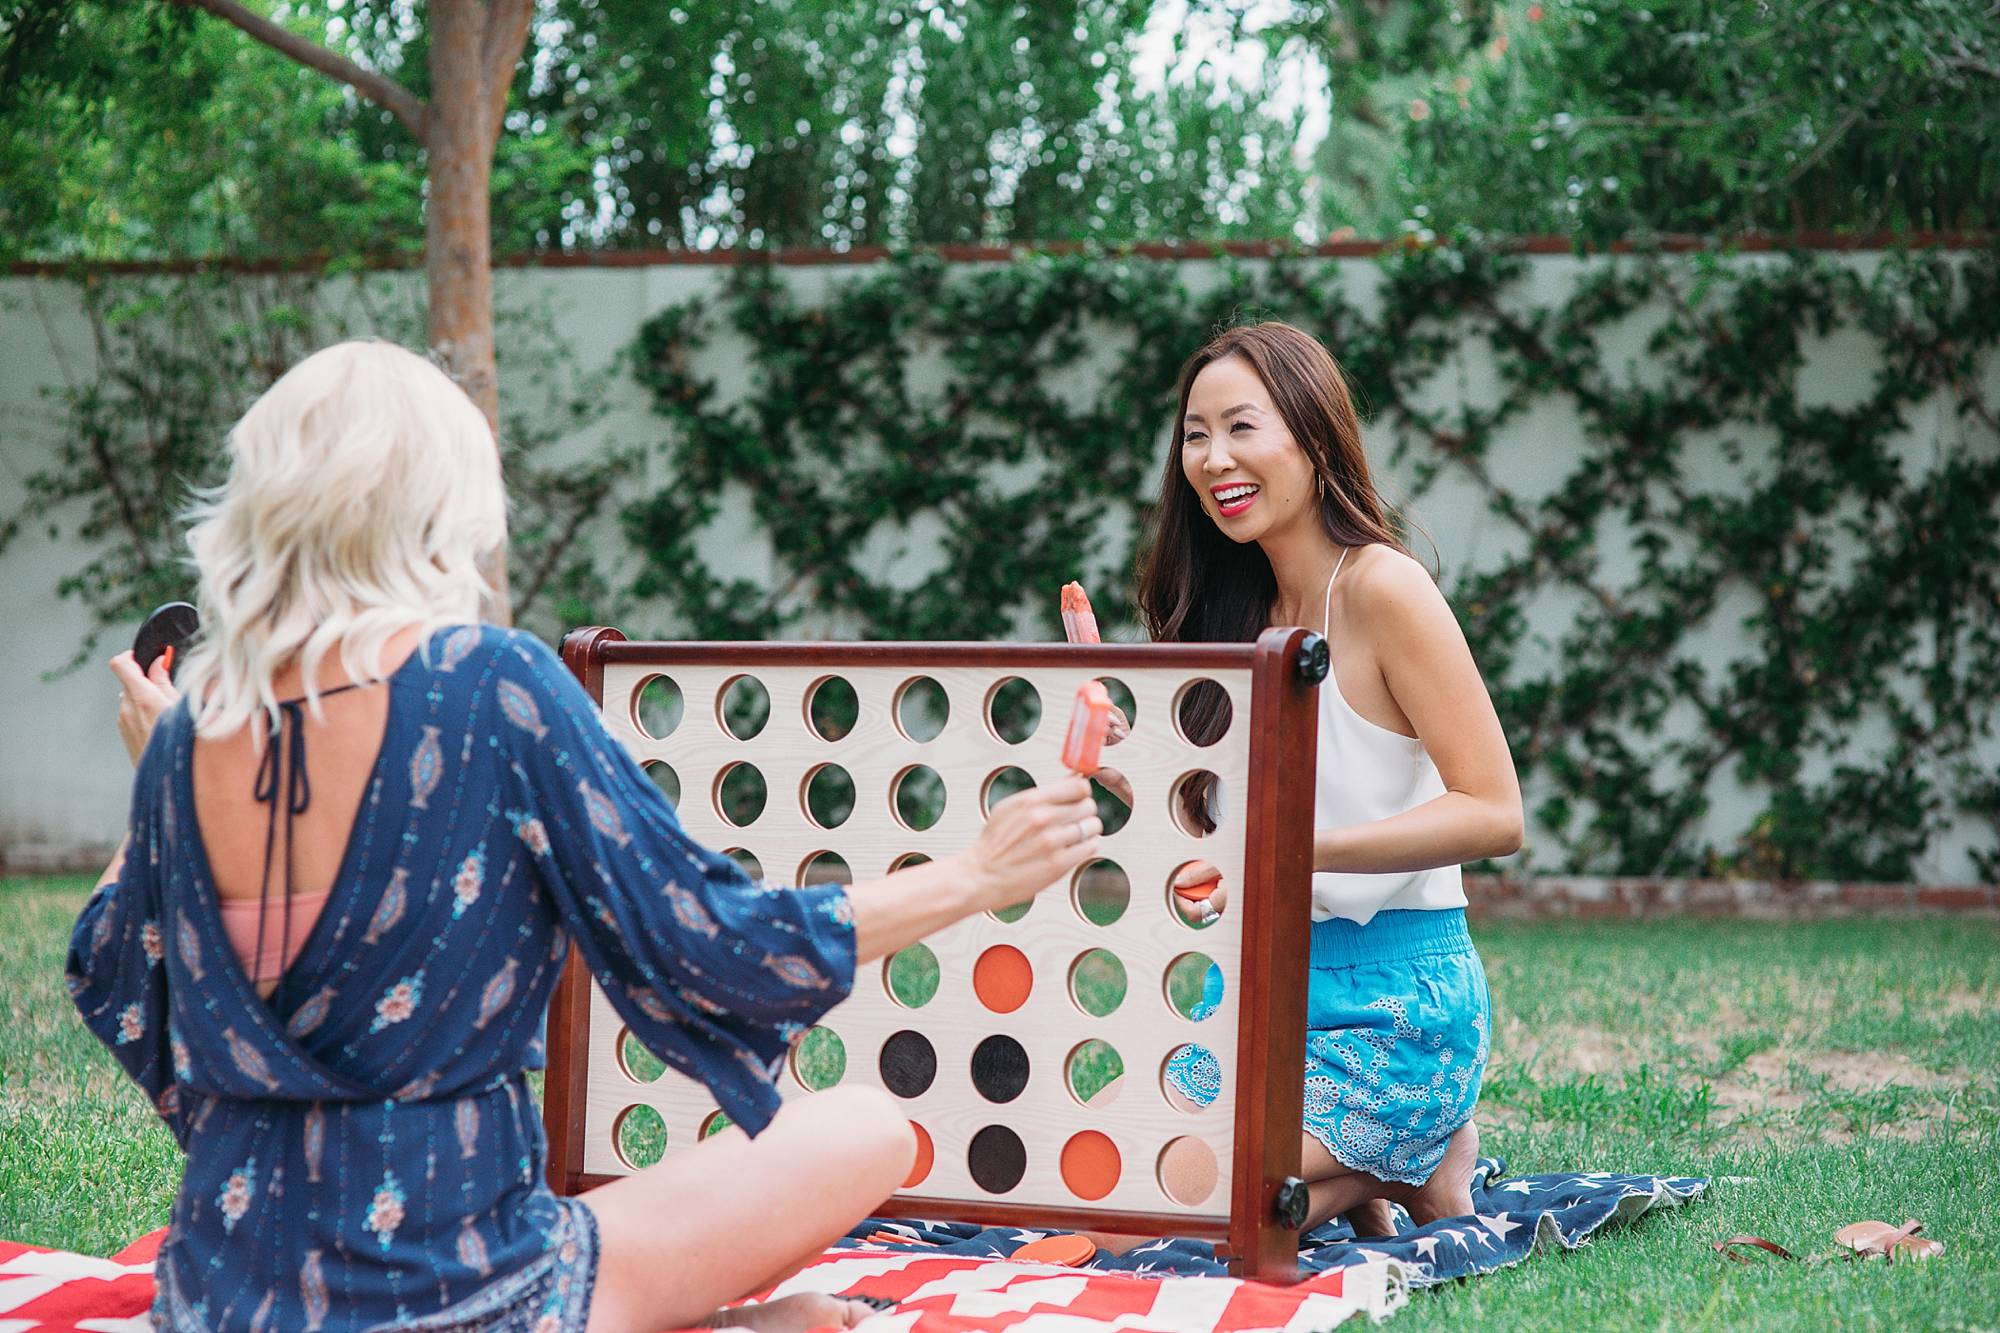 giant connect 4 in-a-row game for summer fun lawn game beach